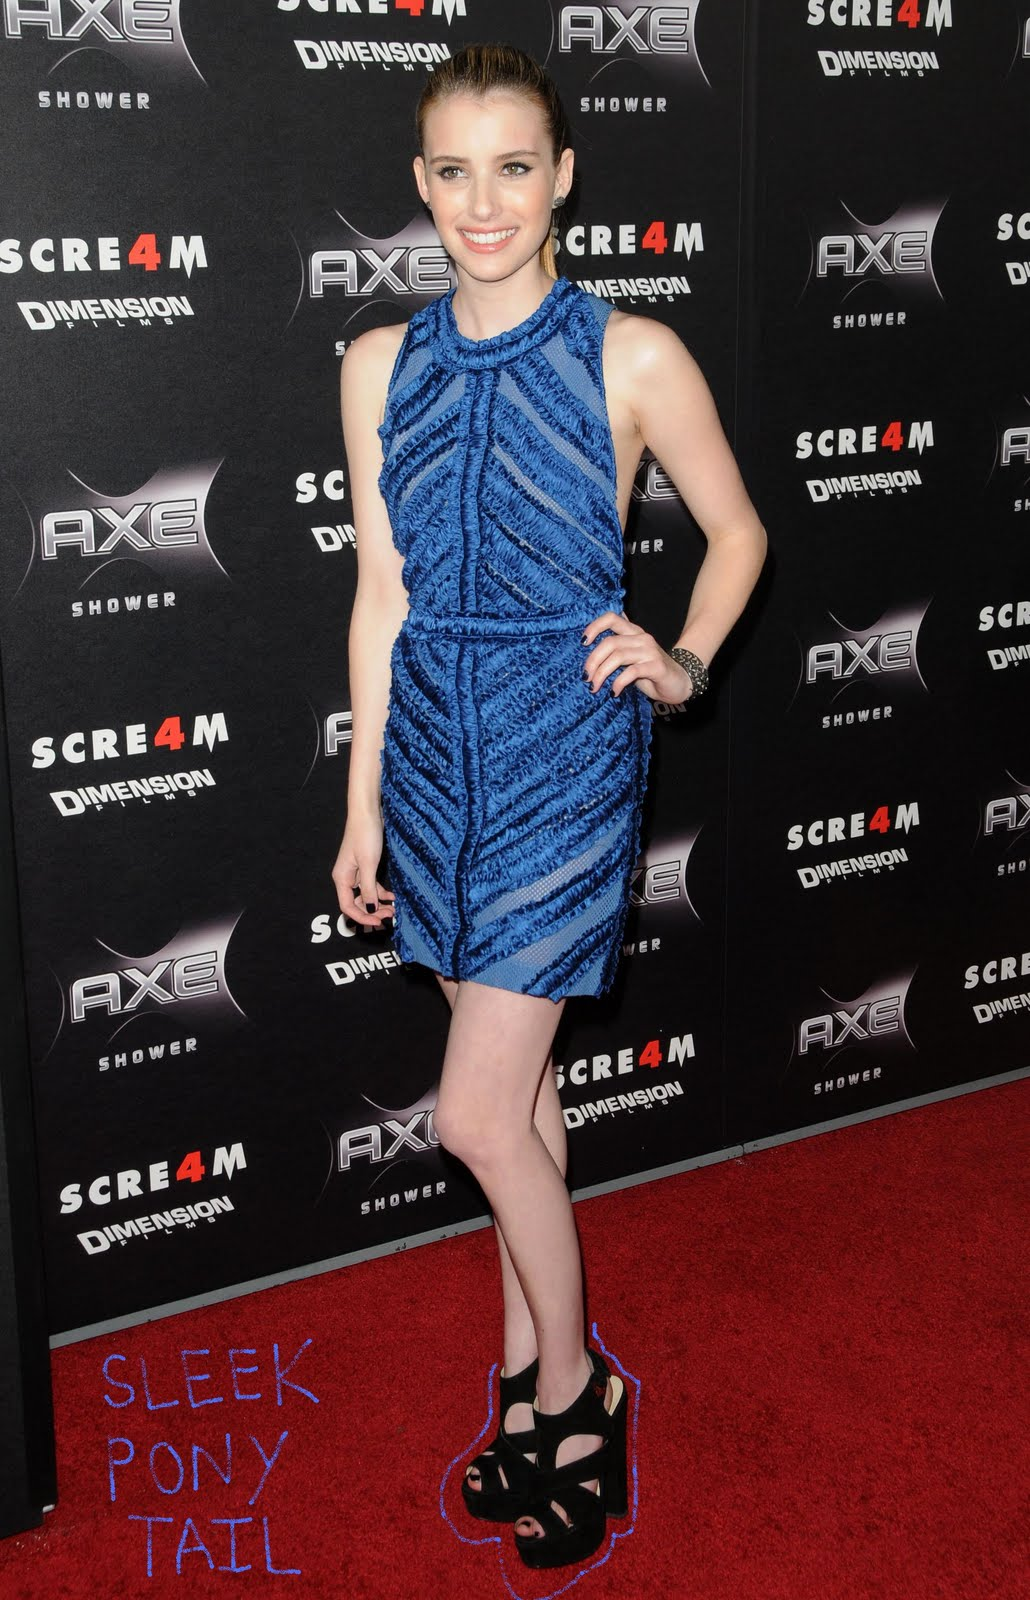 http://3.bp.blogspot.com/-D0jb80H4-lE/ThYODlQAHGI/AAAAAAAABNE/qR5KOl8s61Q/s1600/Emma-Roberts-Scream-4-Blue-Dress-Full.jpg